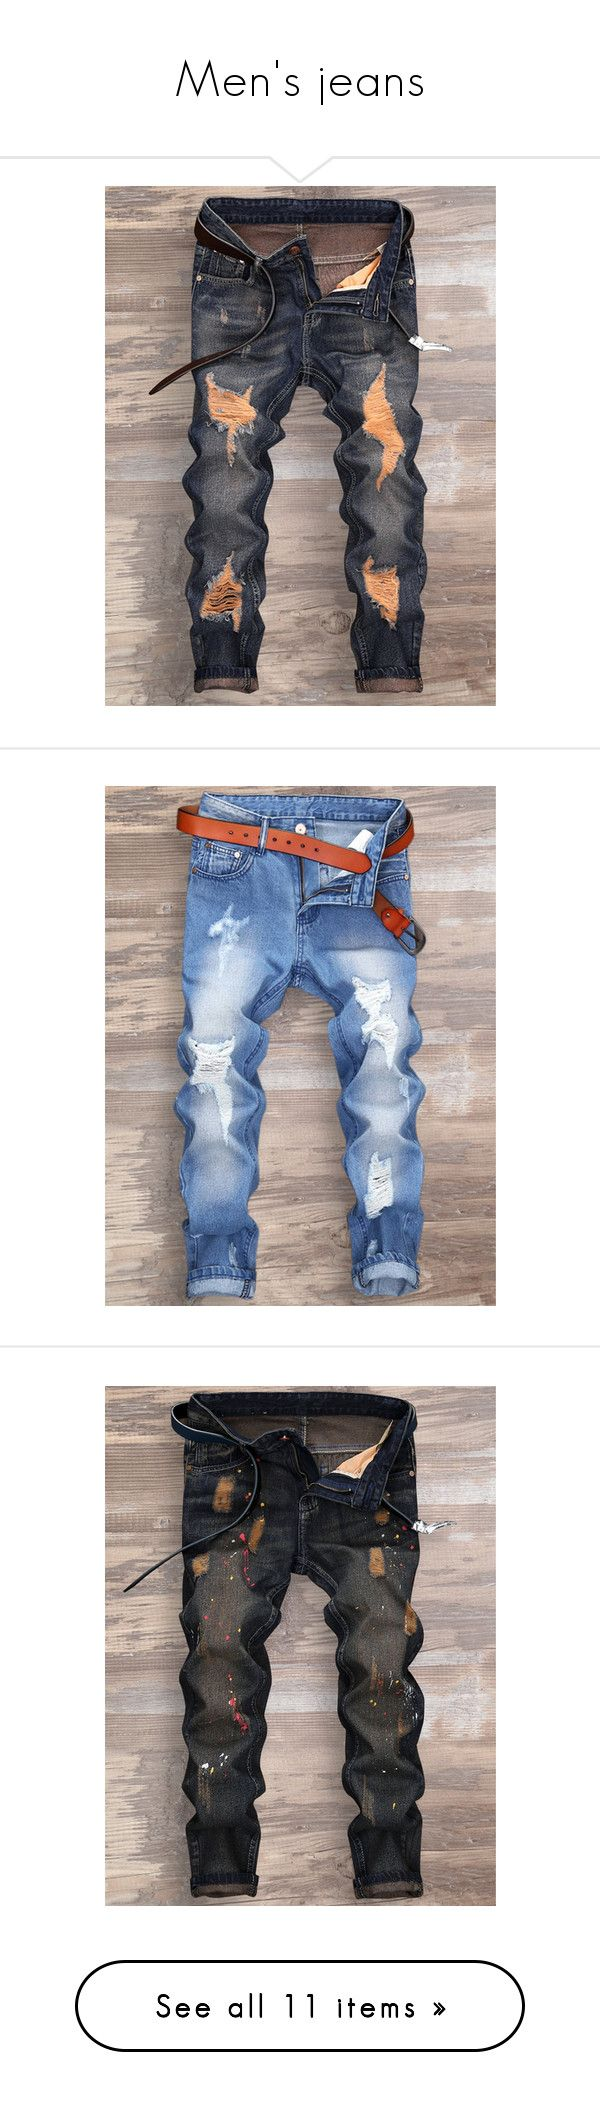 """Men's jeans"" by rosegal-official ❤ liked on Polyvore featuring men's fashion, men's clothing, men's jeans, mens torn jeans, mens cuffed jeans, mens ripped jeans, mens distressed jeans, mens destroyed jeans, mens zipper jeans and men's paint splatter jeans"